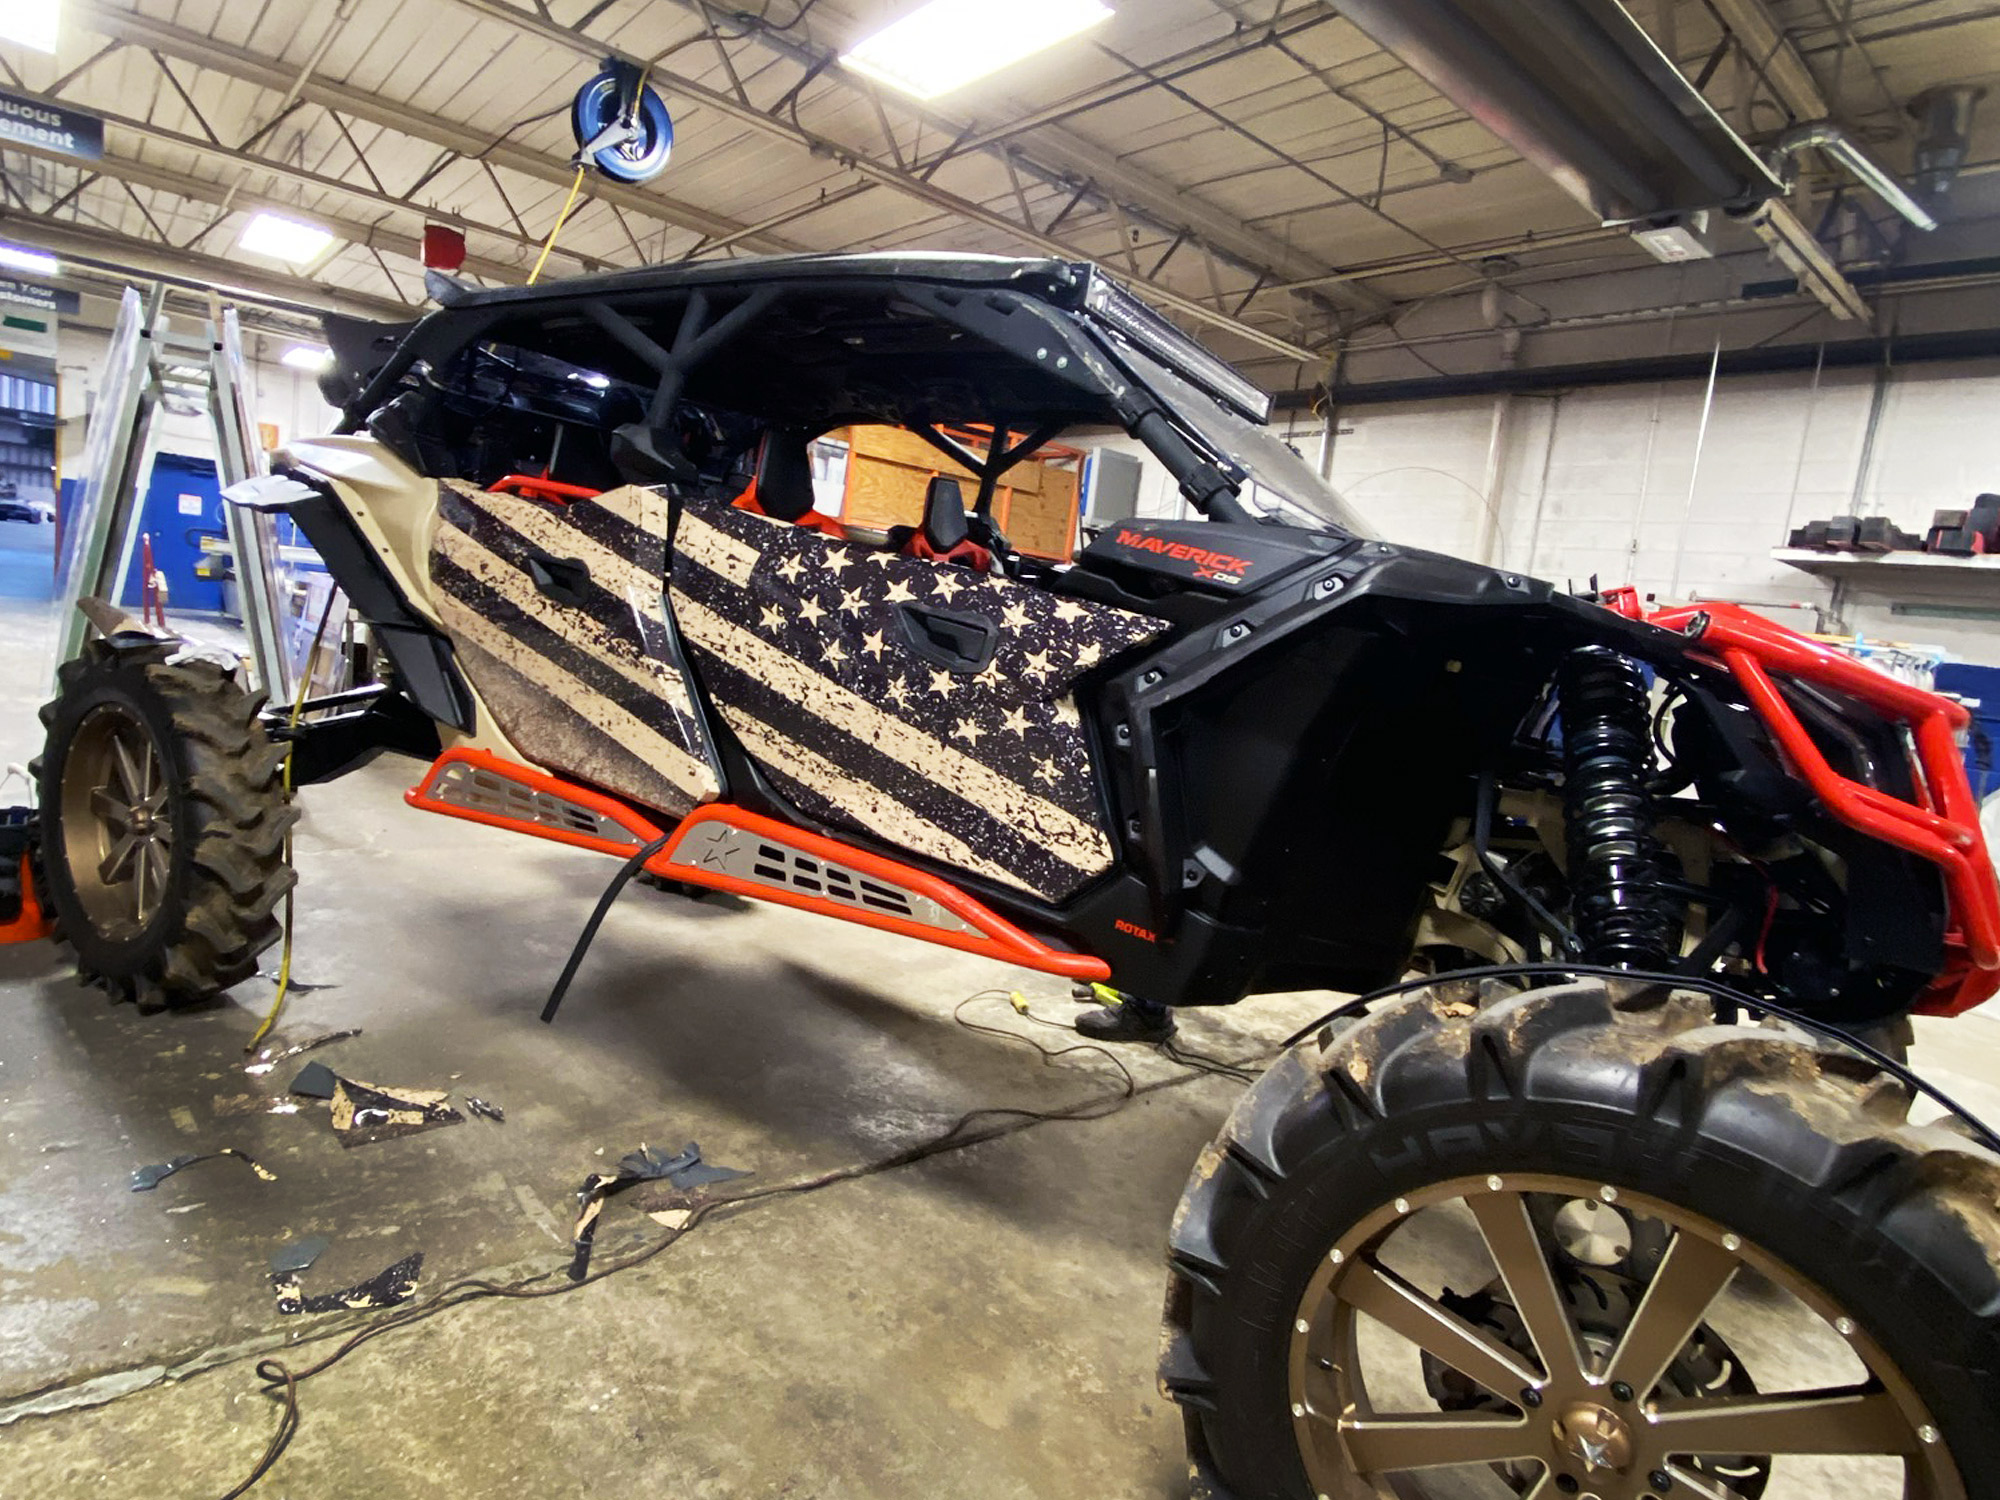 Partial wrap with American flag on an off-road 4WD vehicle.